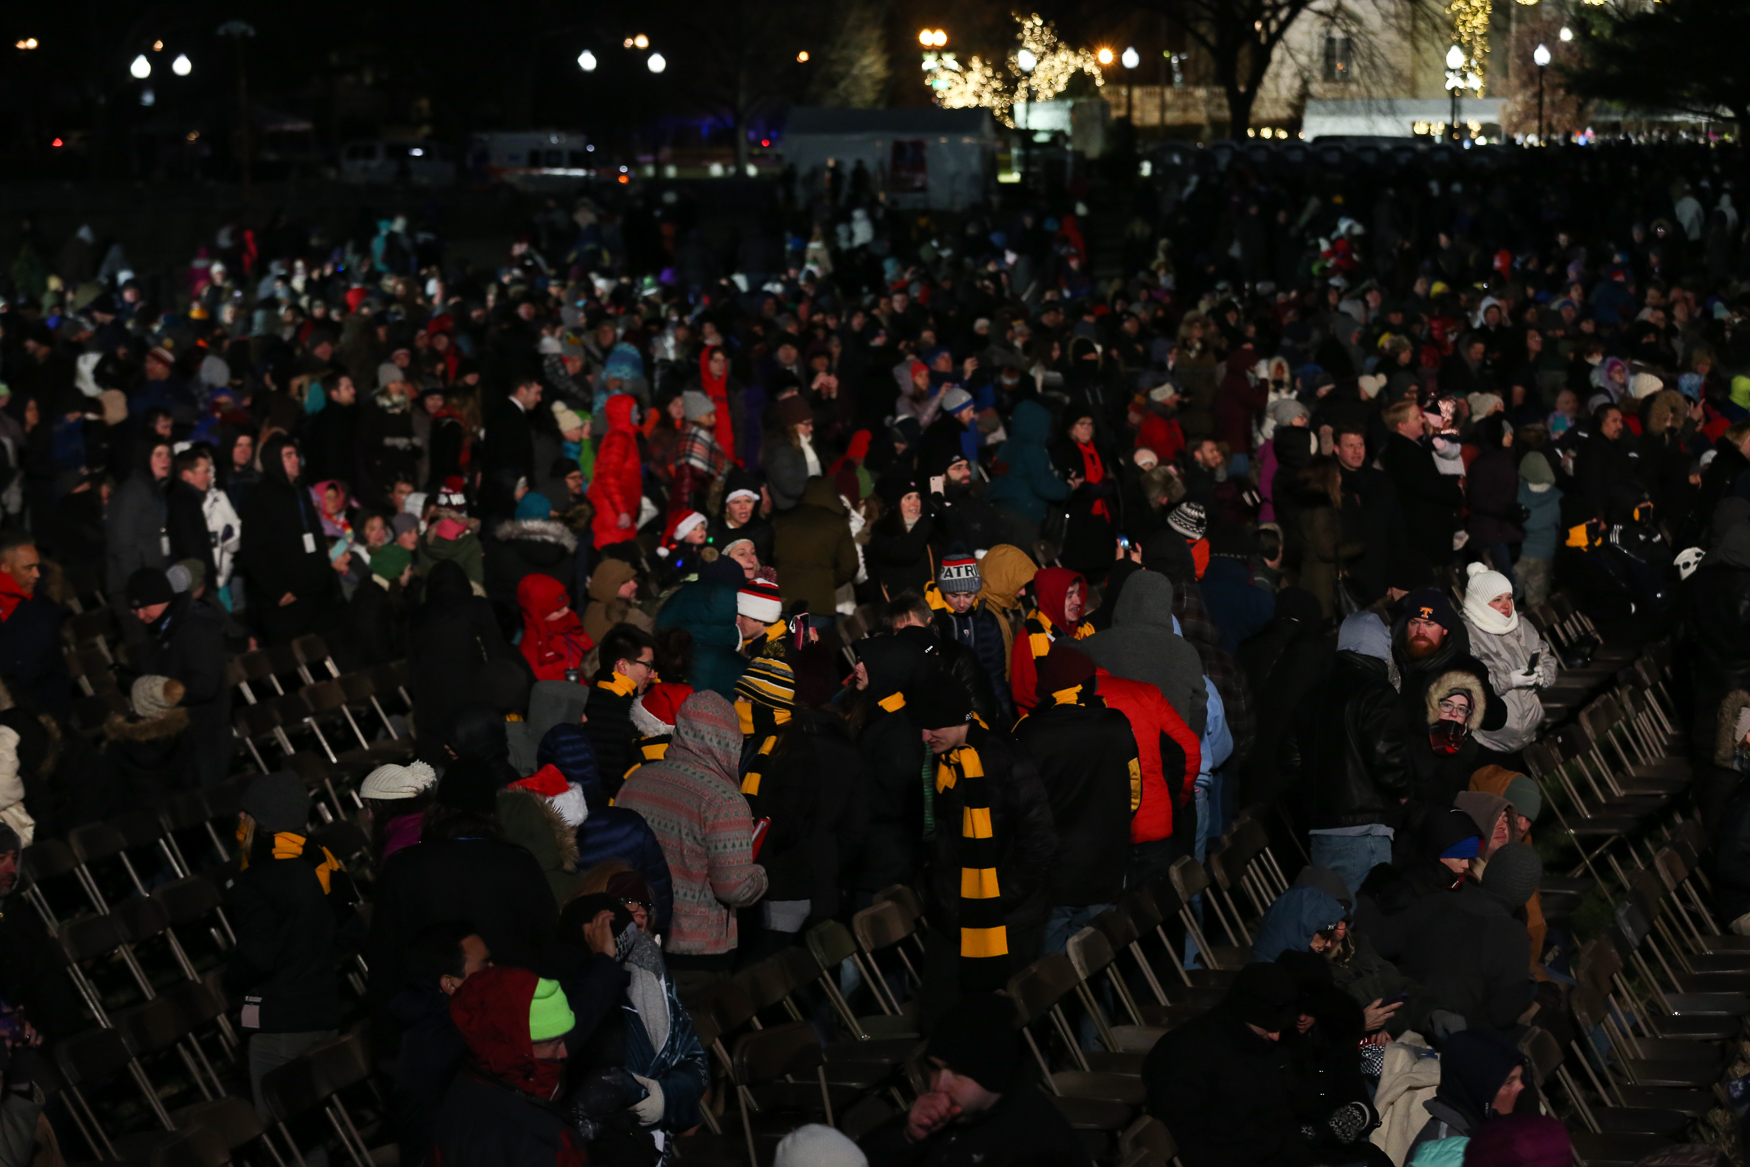 After the tree was lit, roughly 1/3 of the crowd left - there were dozens of empty chairs before the festivities started. (Amanda Andrade-Rhoades/DC Refined){ }